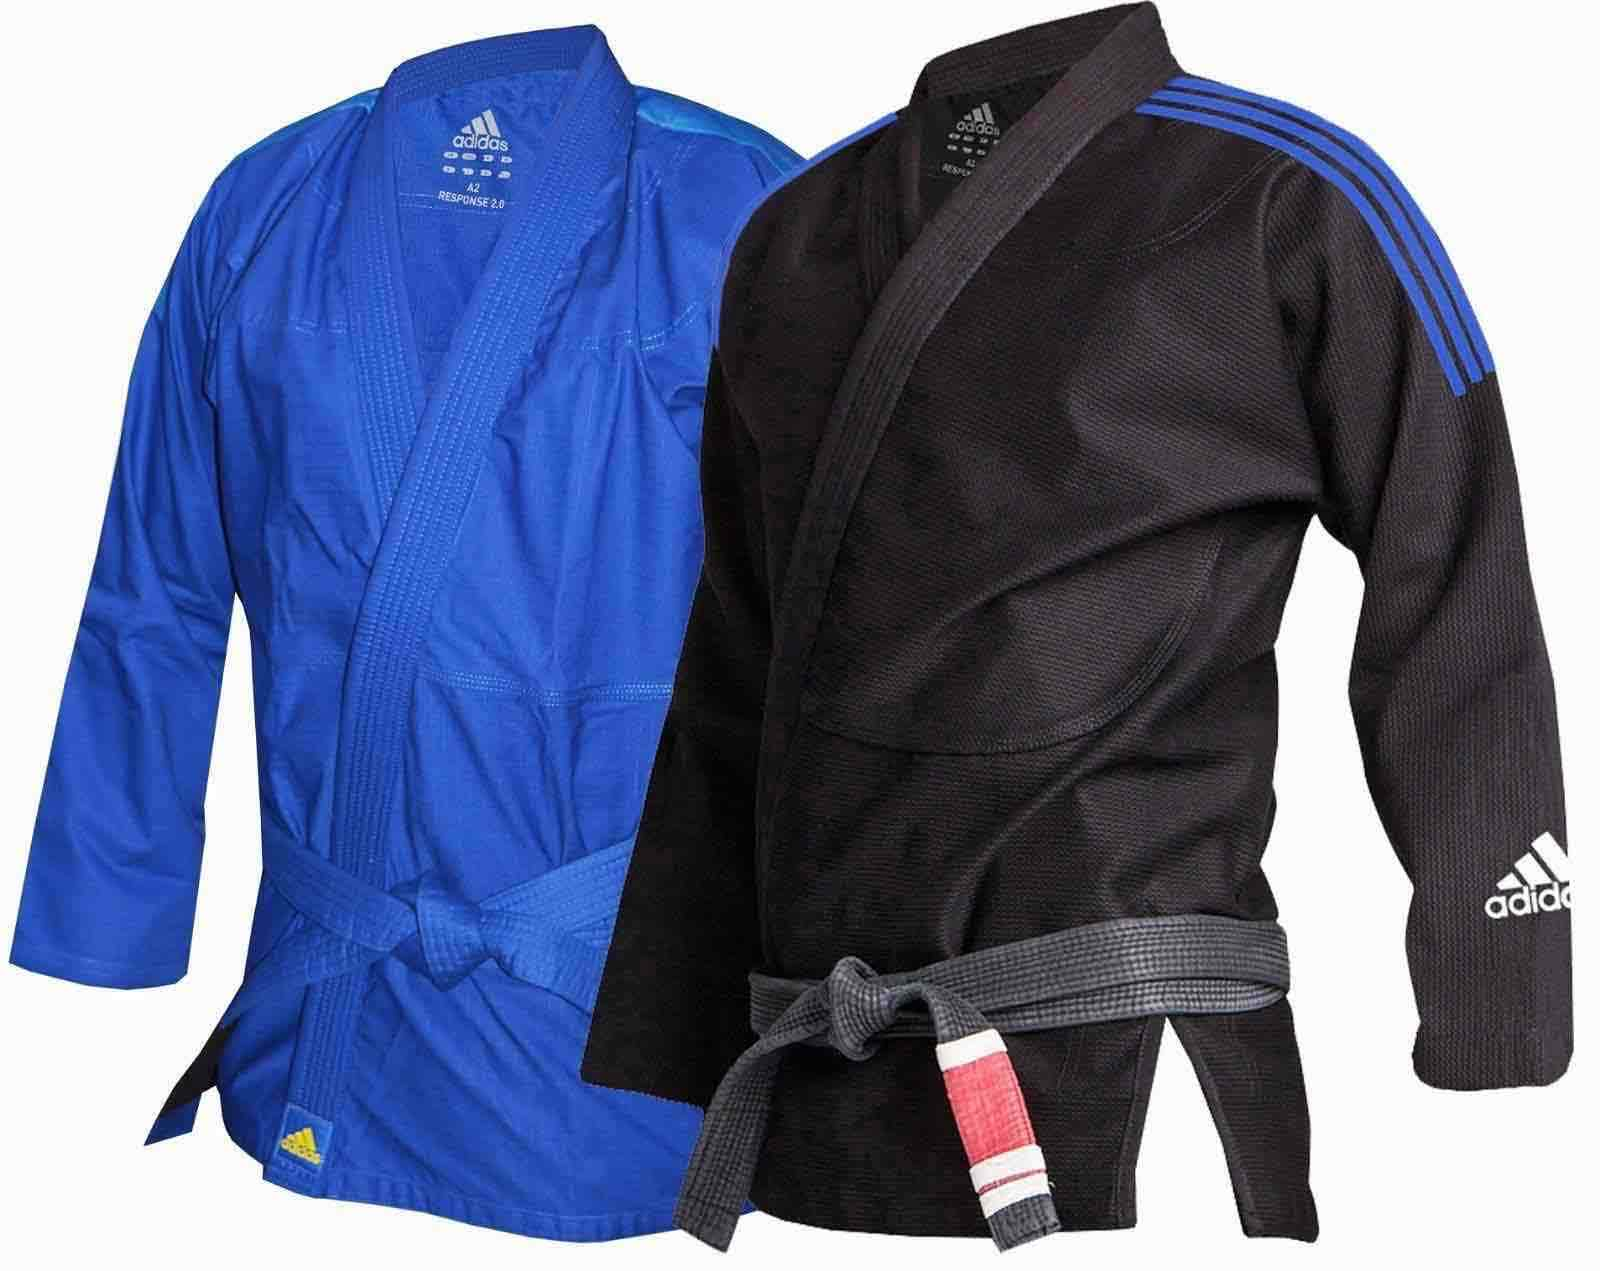 BJJ GI & Clothing